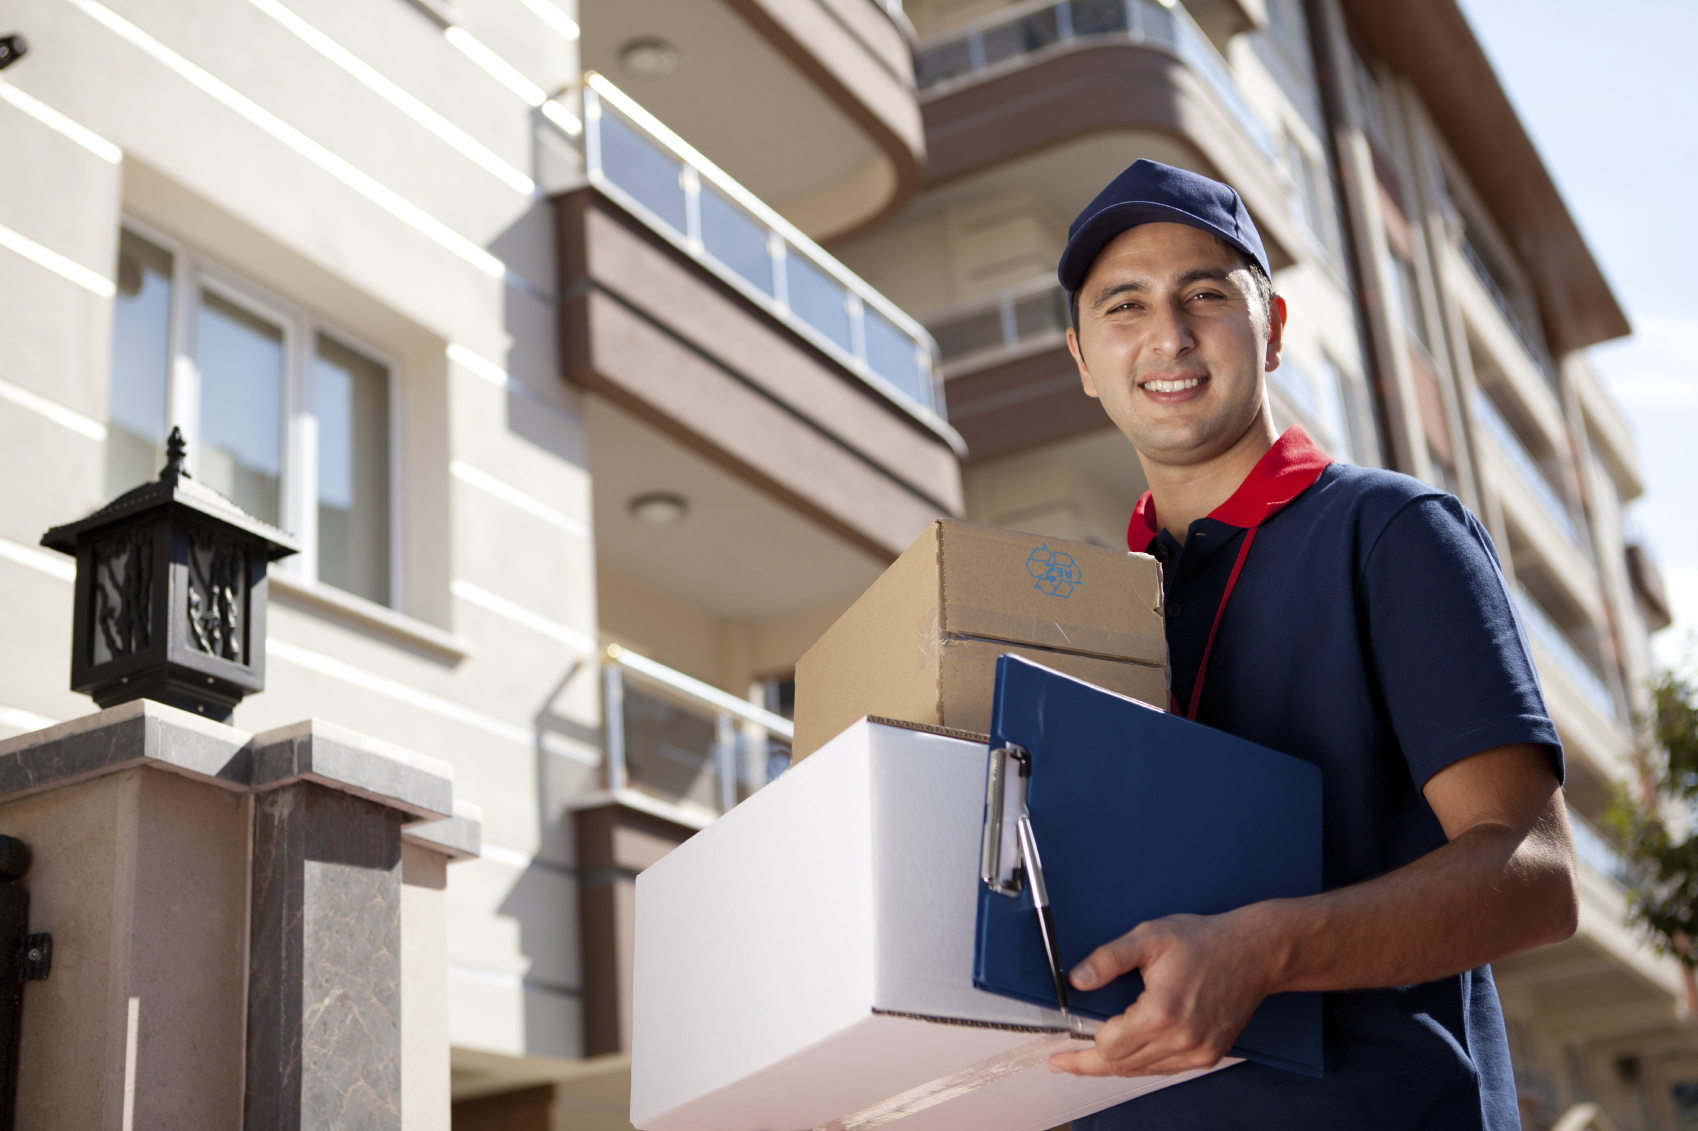 Next Day Delivery Courier Service